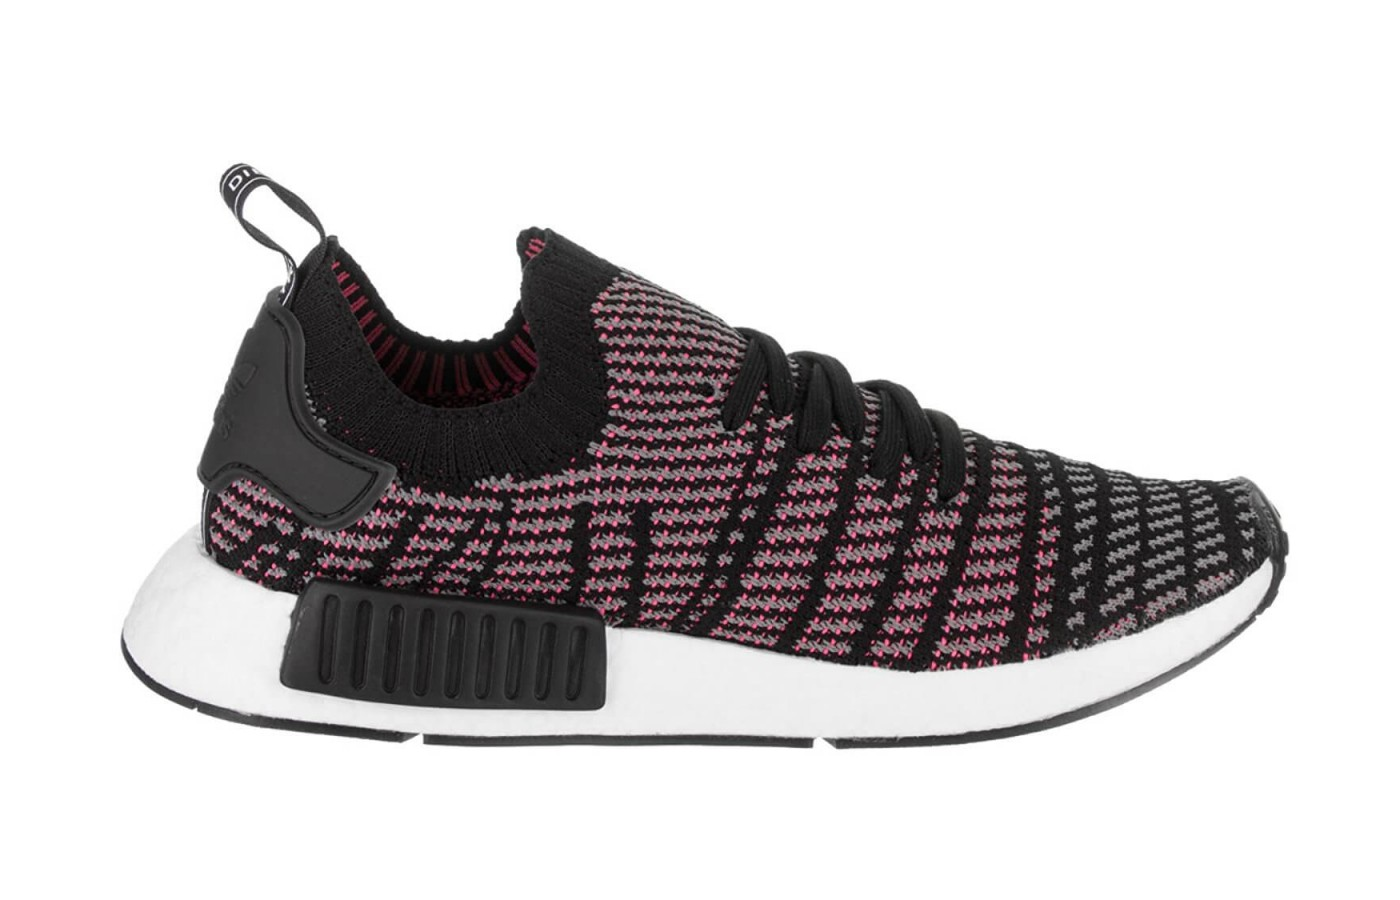 check out 58115 e2c86 Adidas NMD R1 Fully Reviewed and Compared